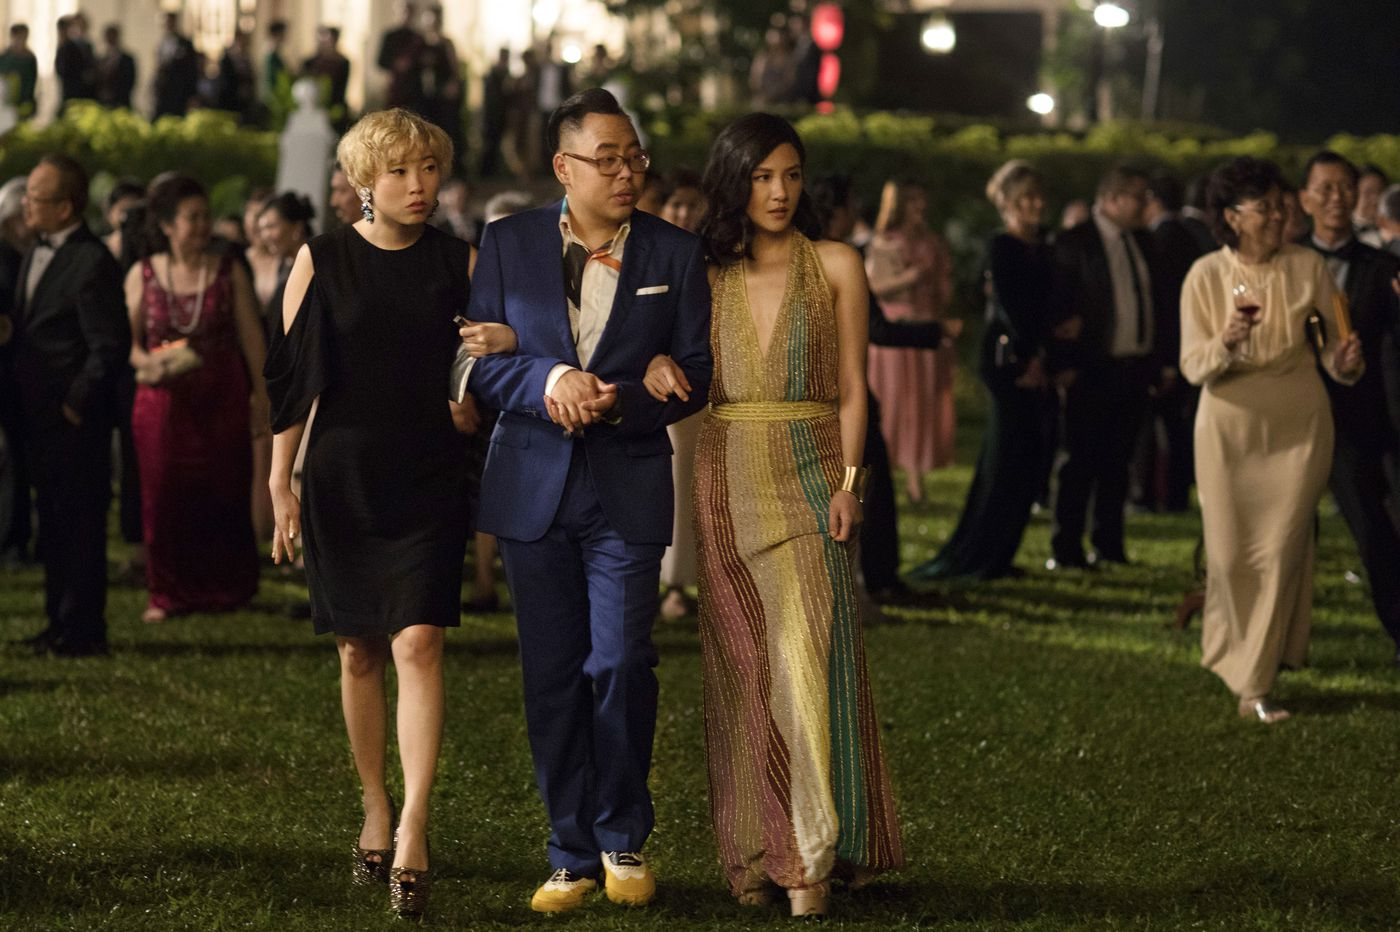 My favorite part of 'Crazy Rich Asians' was the credits